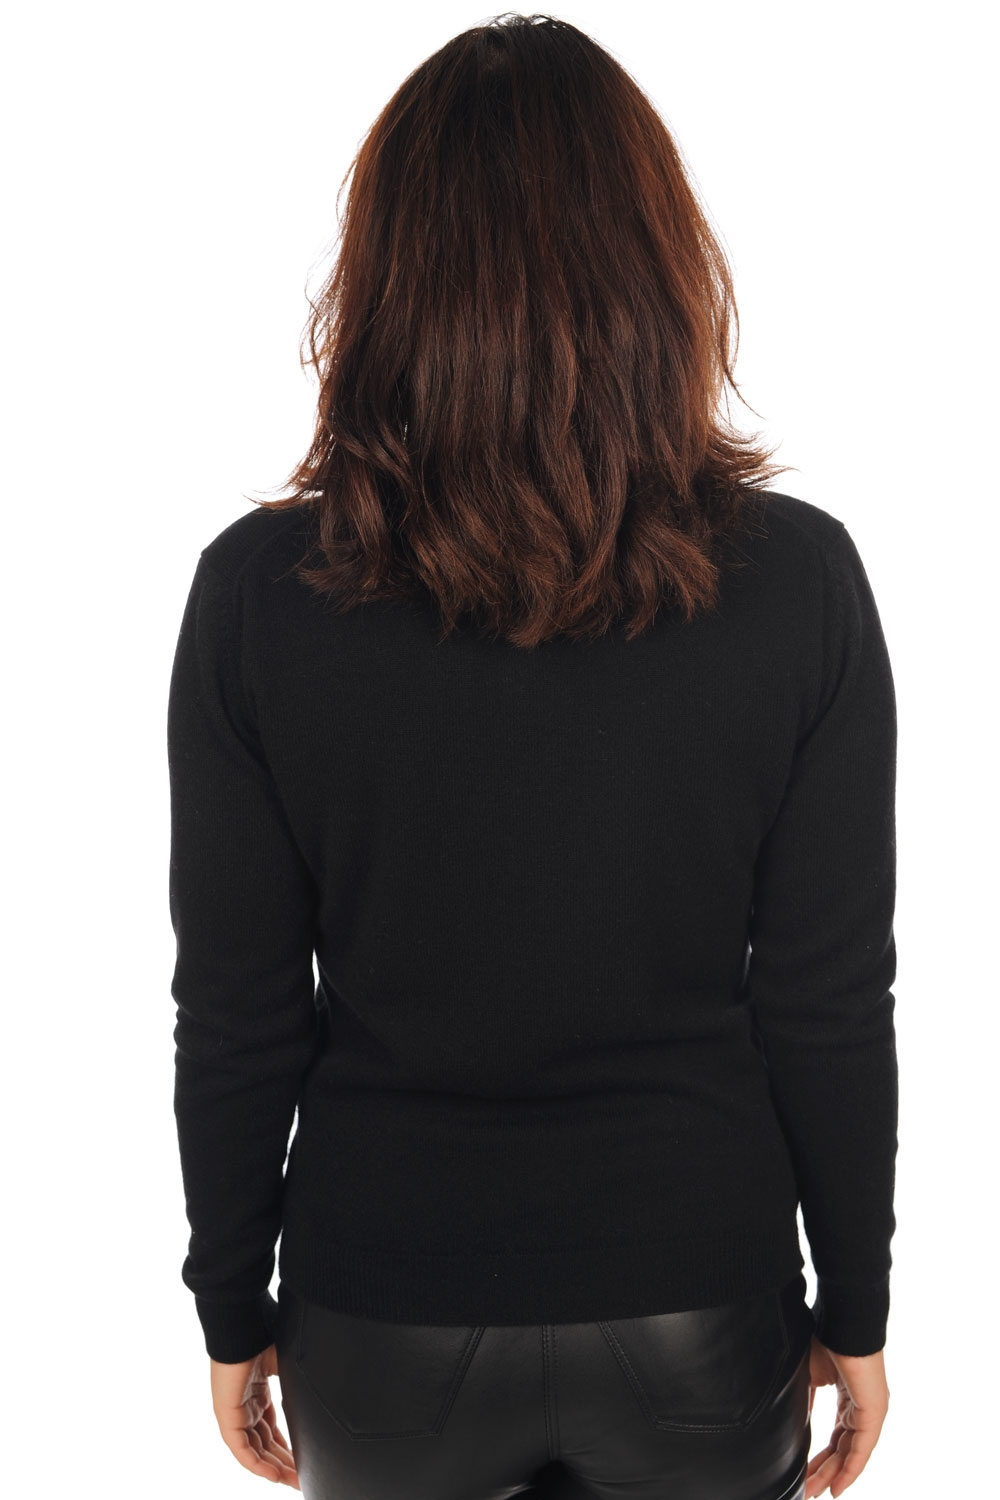 cashmere ladies basic sweaters at low prices thalia black s